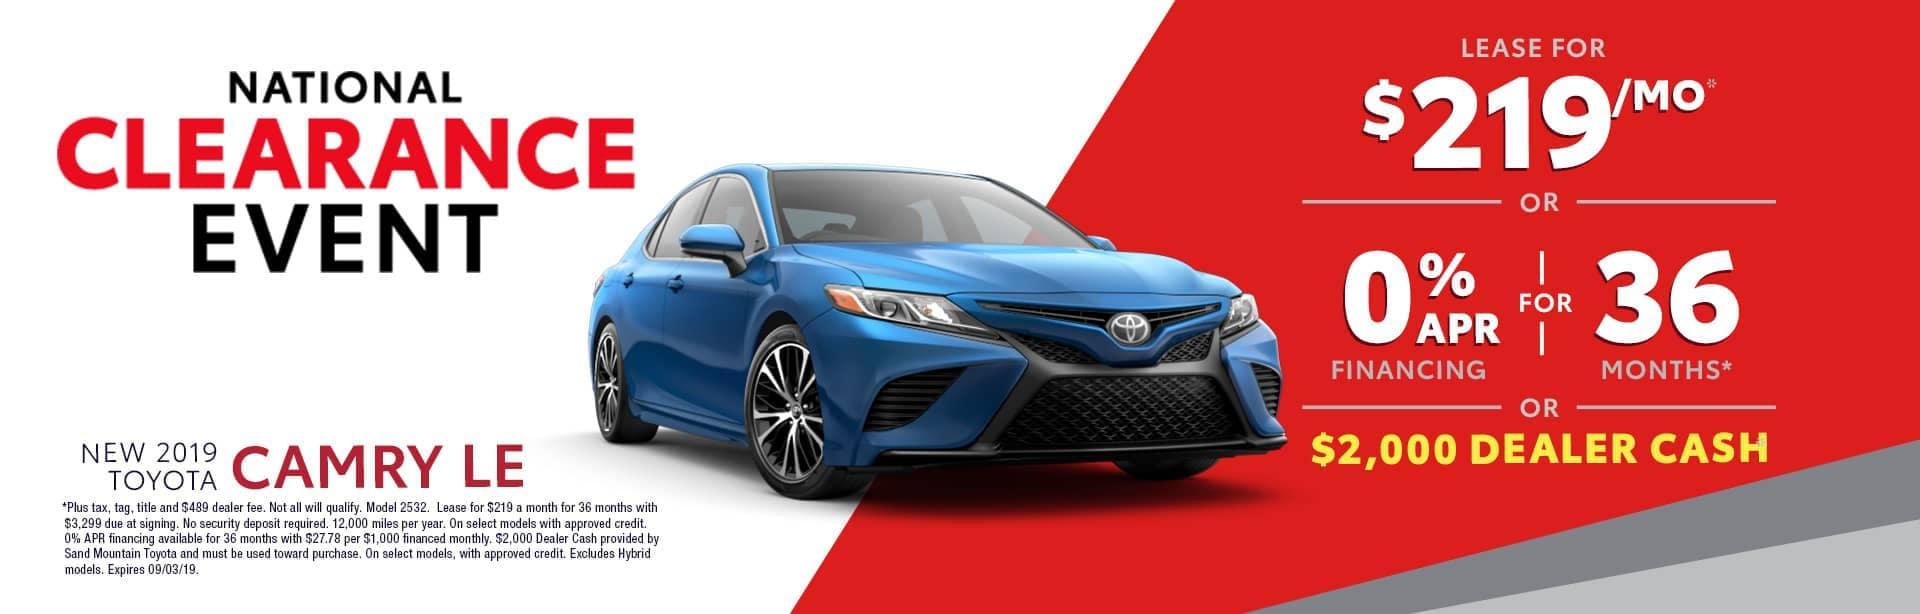 Homepage Aug Offer Toyota Camry